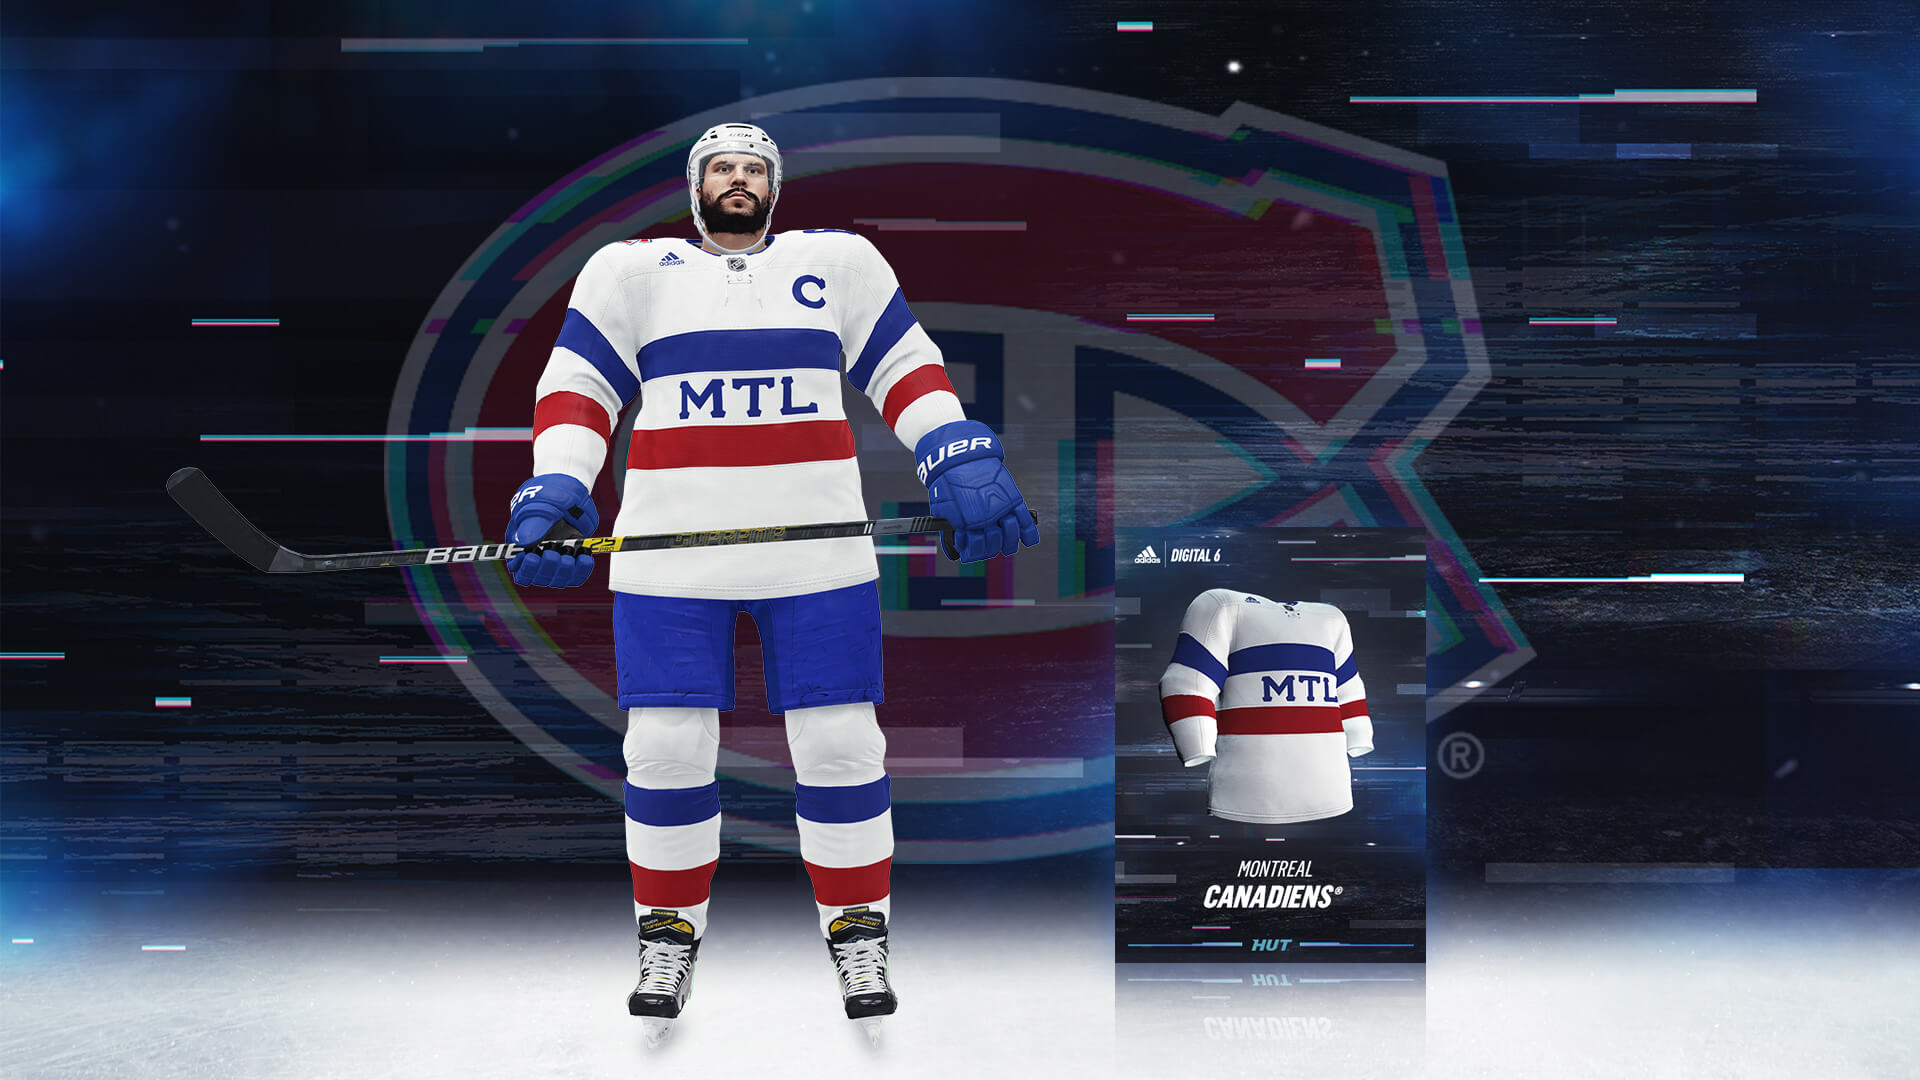 Get Exclusive Adidas Uniforms for Original Six NHL 19 Teams f3de2046fd6